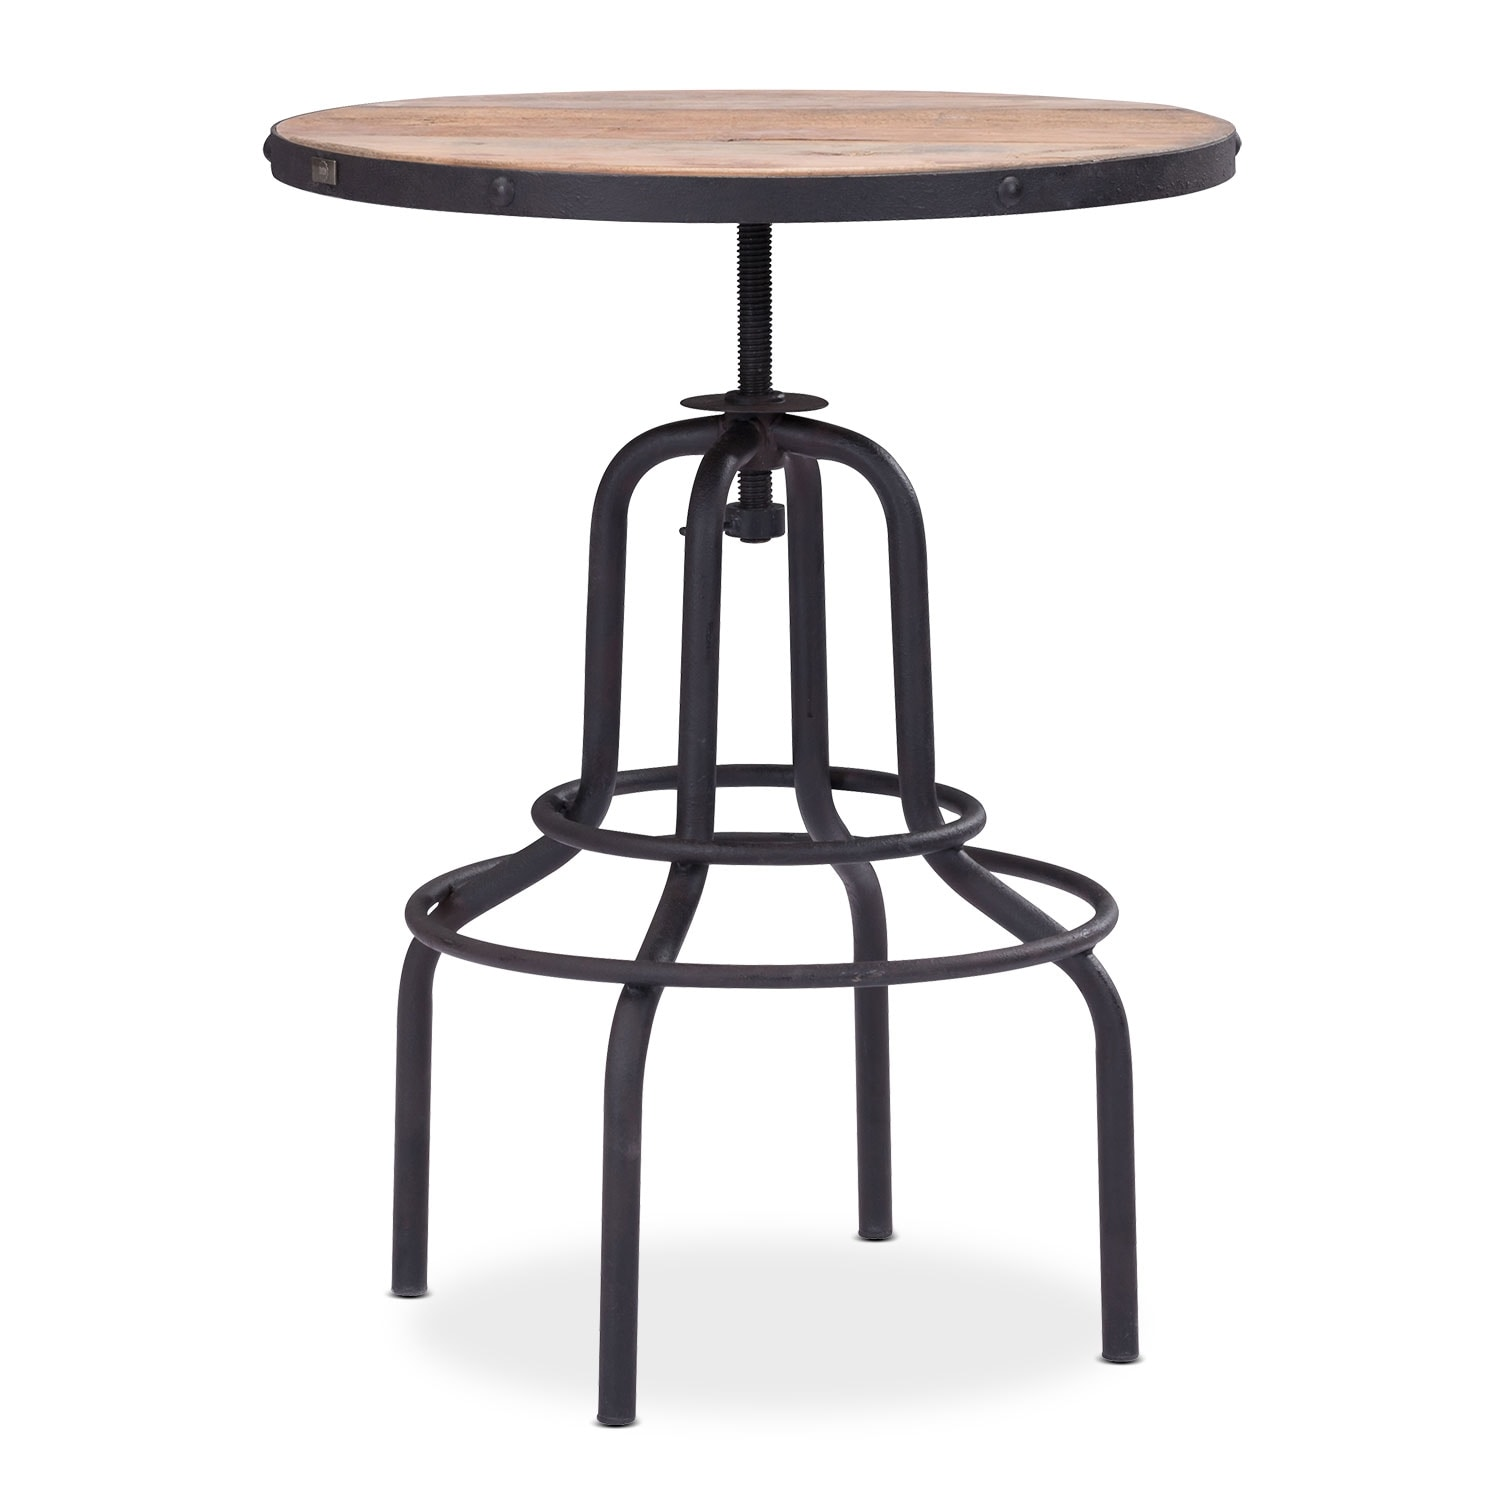 Dining Room Furniture - Elston Adjustable Table - Antiqued Black